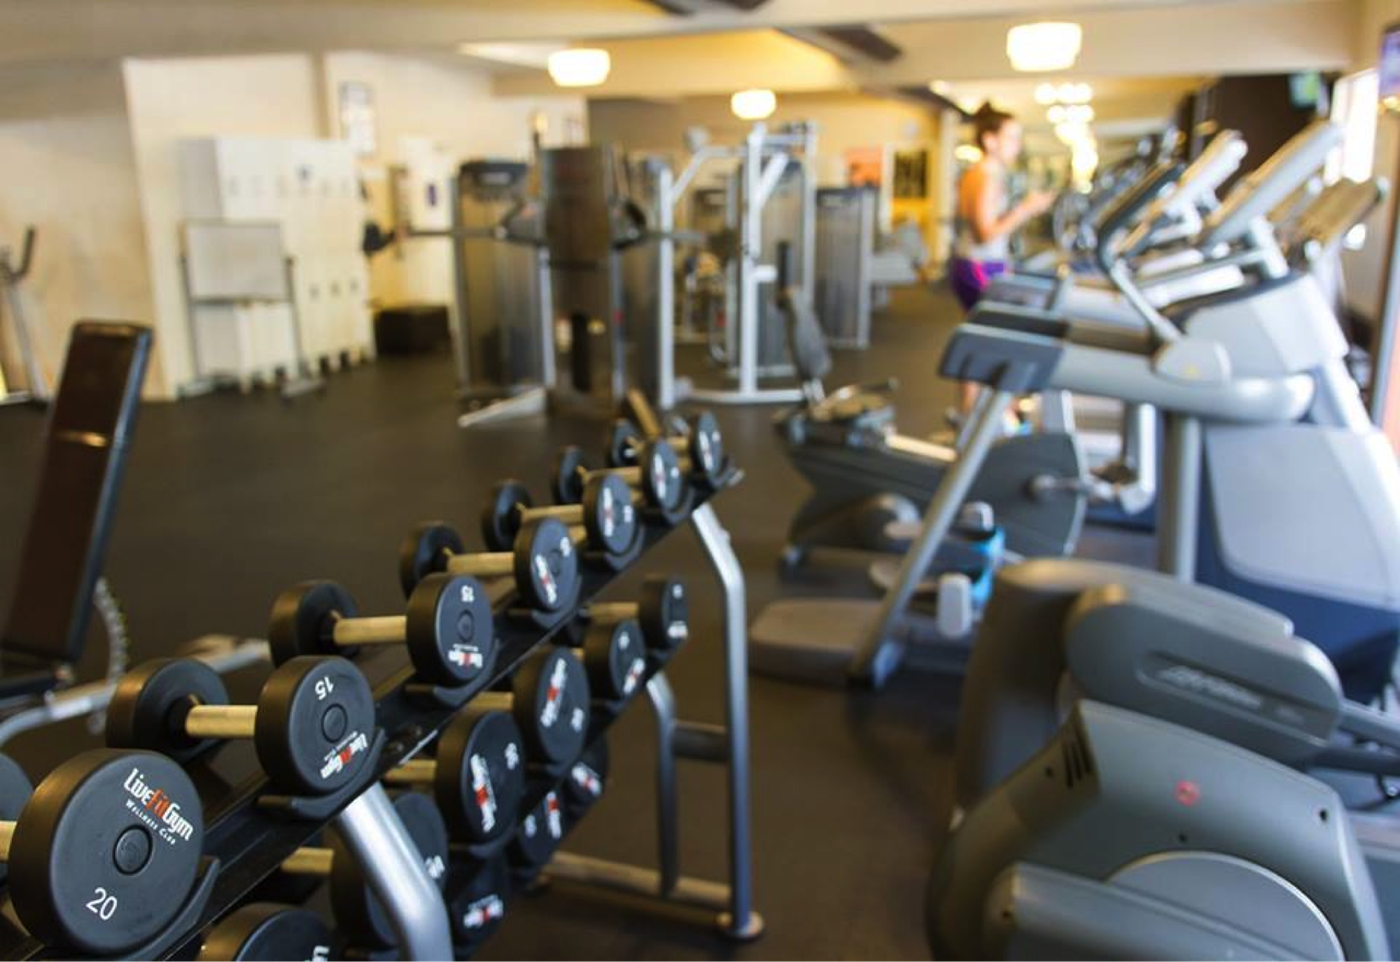 San Francisco's Best Chain Gyms: A Complete Rundown of Cost and